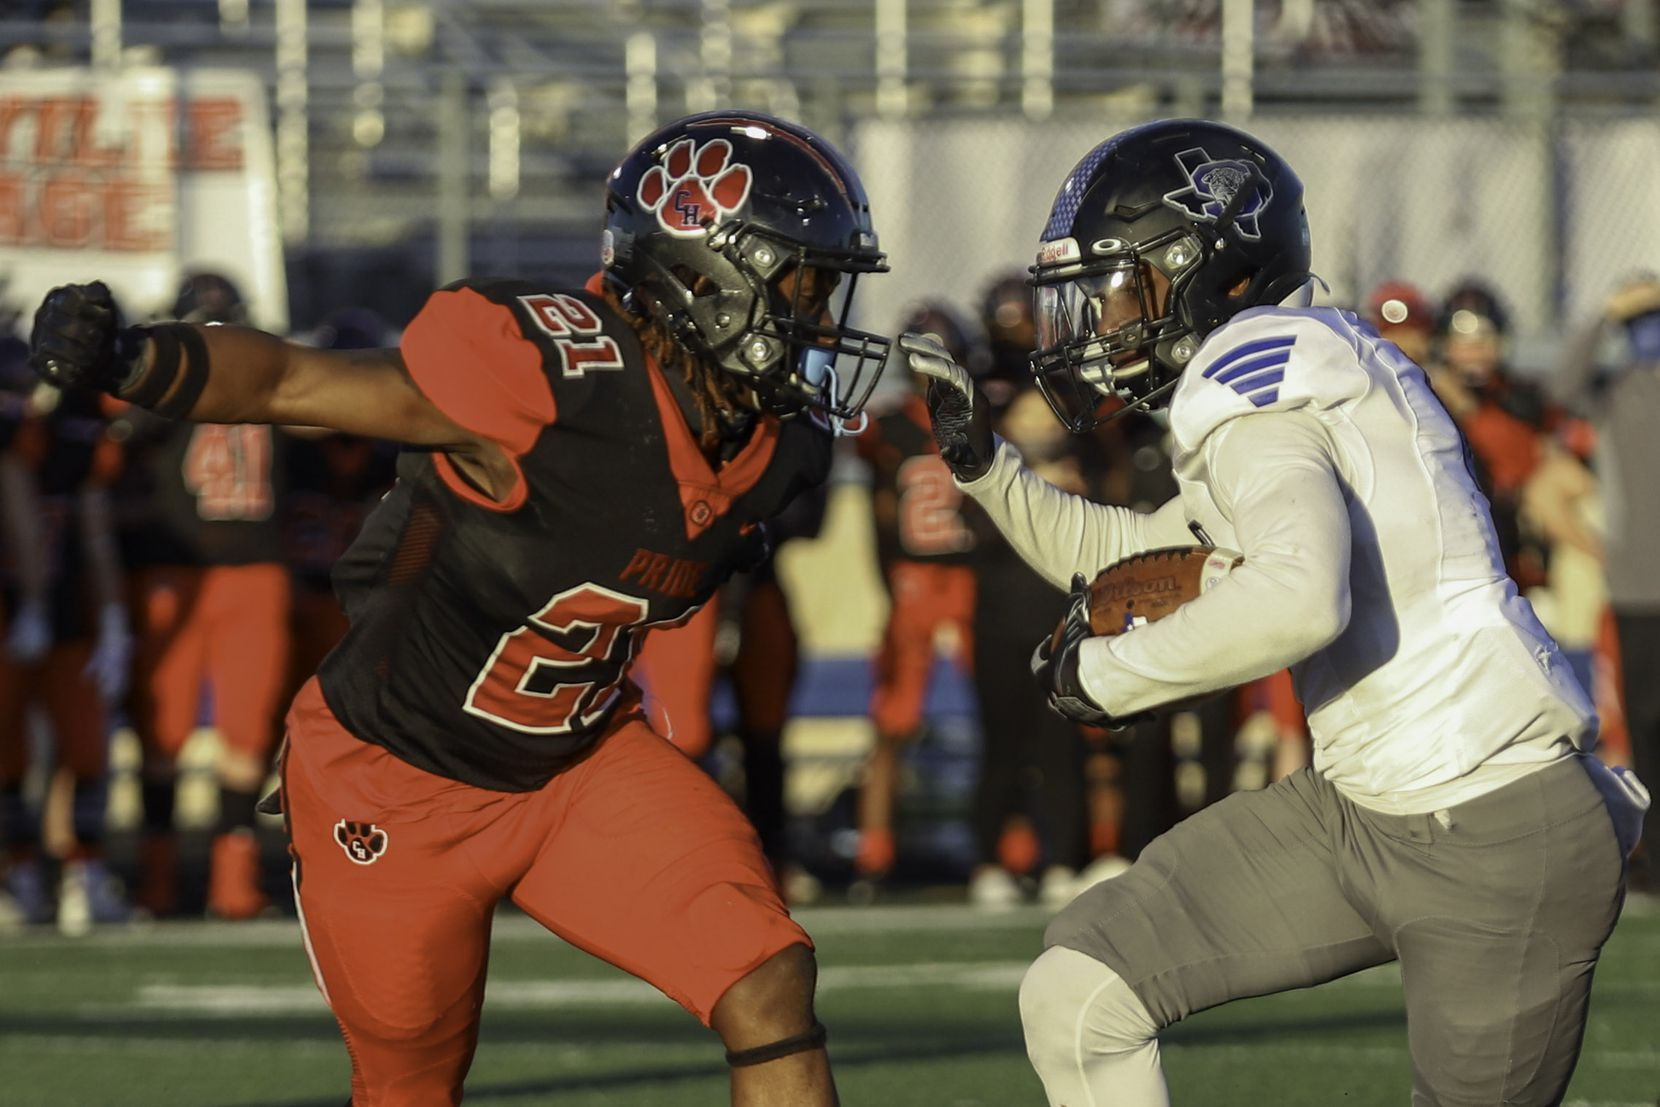 Mansfield Summit (6) running back Jaydon Lott scores a touchdown against Colleyville Heritage defensive back BJ Roney (21) during the second half at Bearcat Stadium in Aledo, Texas, Saturday, December 26, 2020. (Elias Valverde II / Special Contributor)